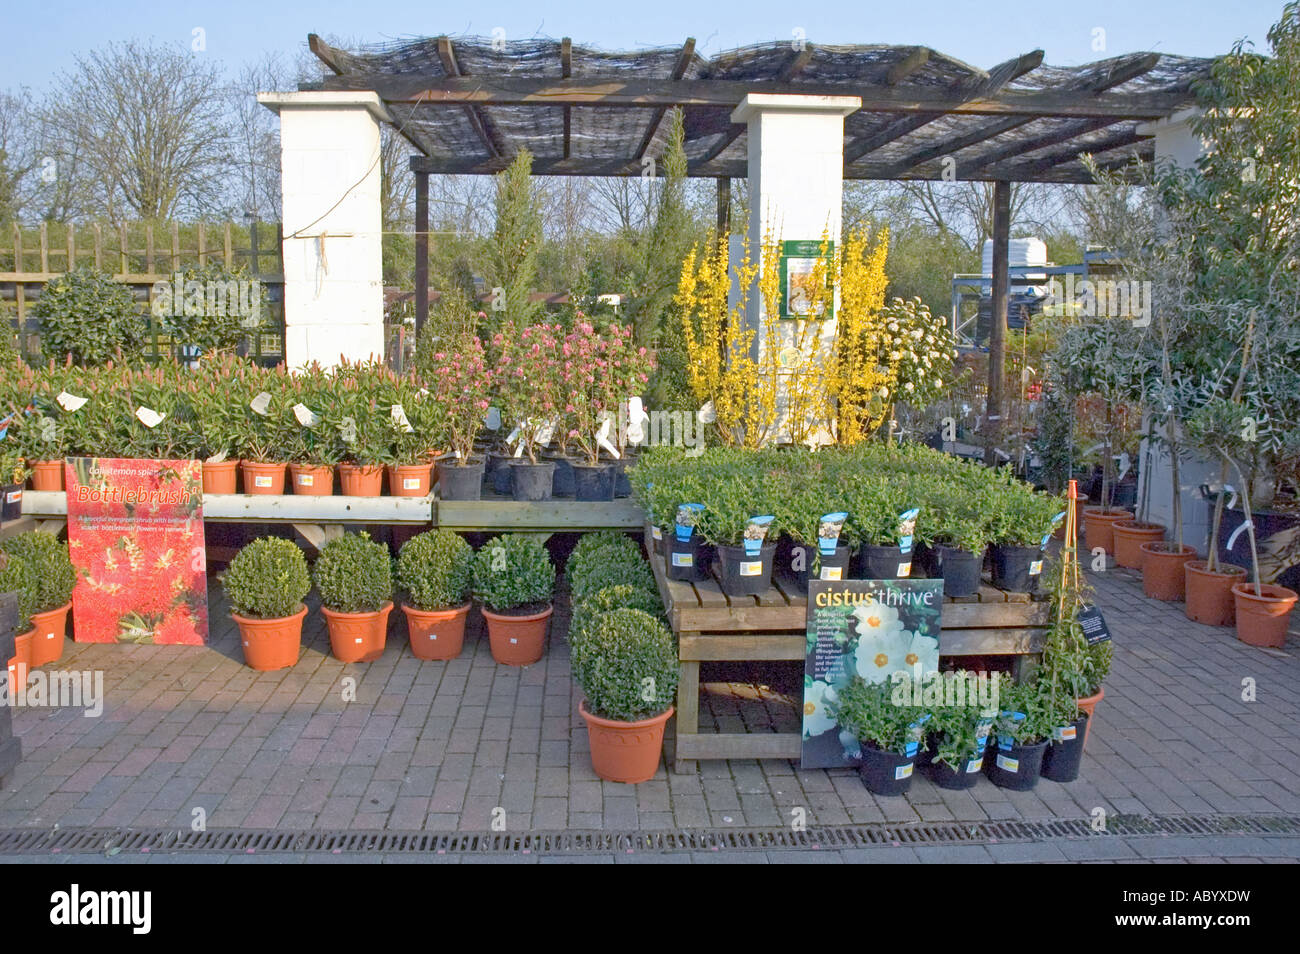 Garden Centre: Display At Alexandra Palace Garden Centre London England